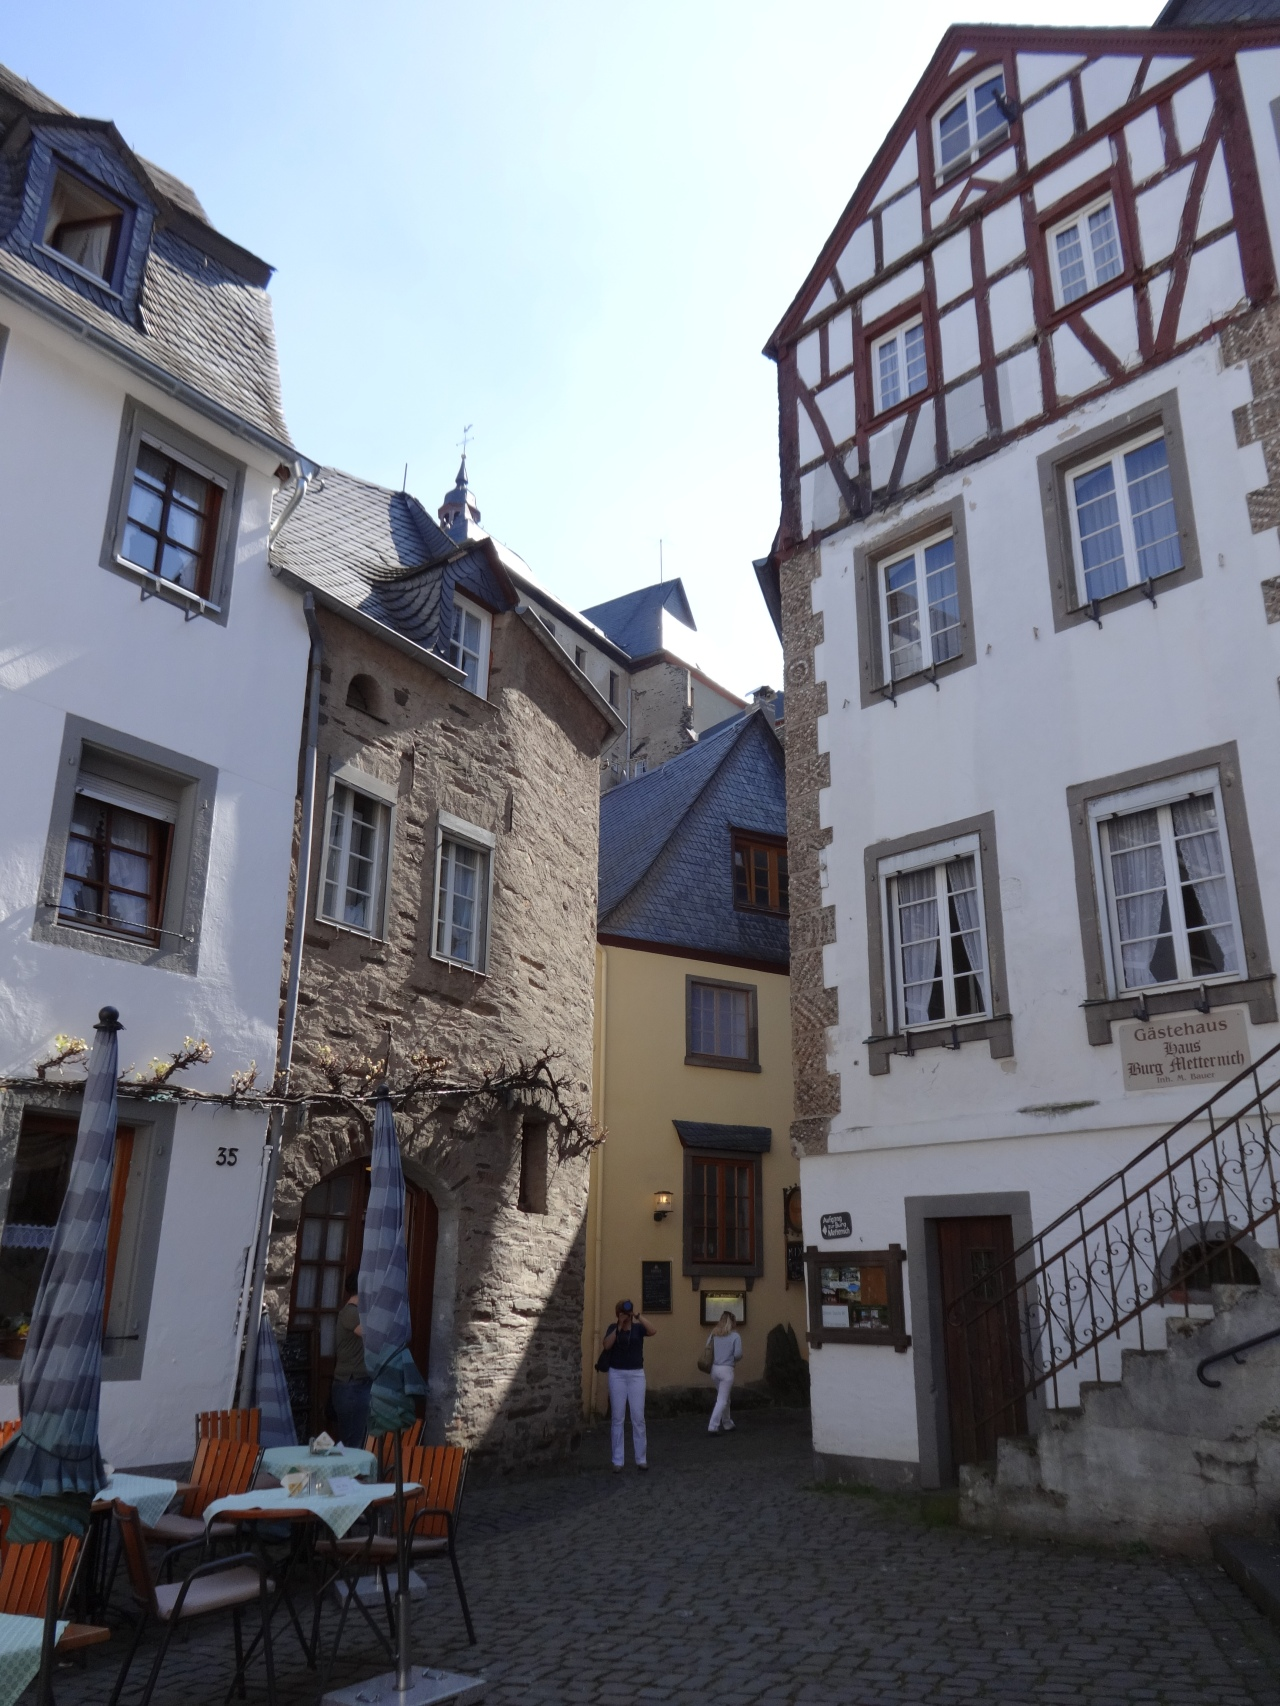 8 Things I will miss aboutGermany